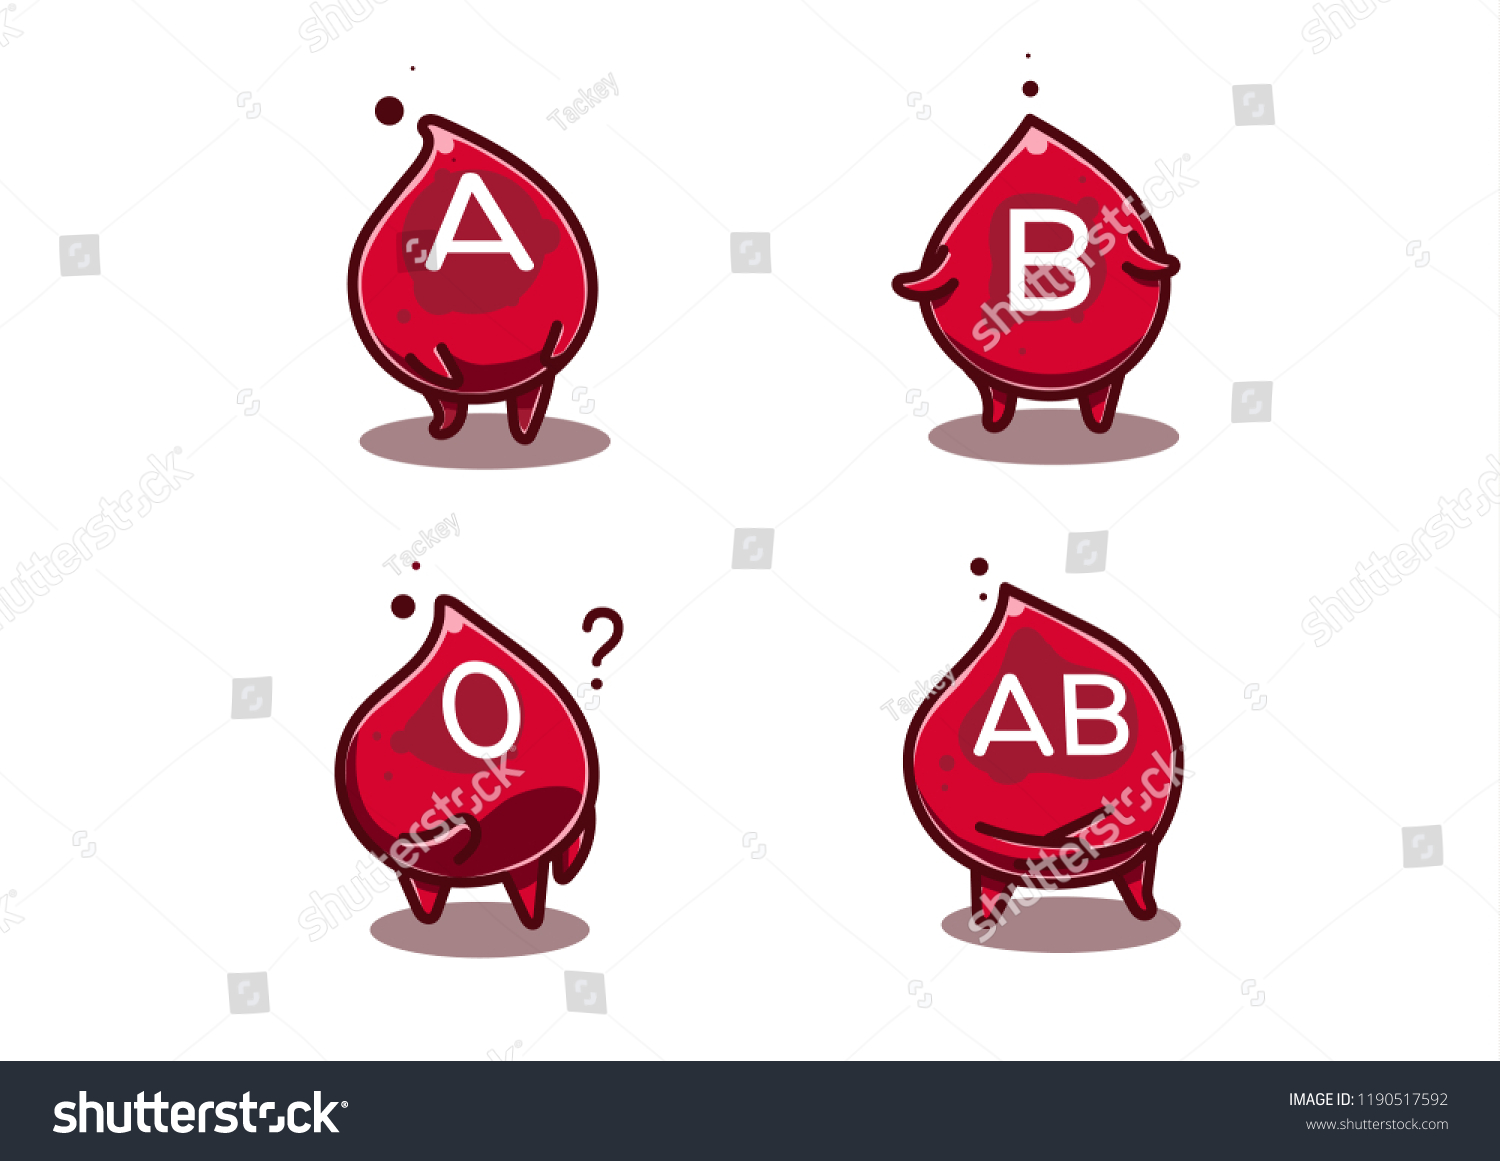 hight resolution of blood group in shiny cartoon comic style blood advertising clipart for healthcare purpose such as